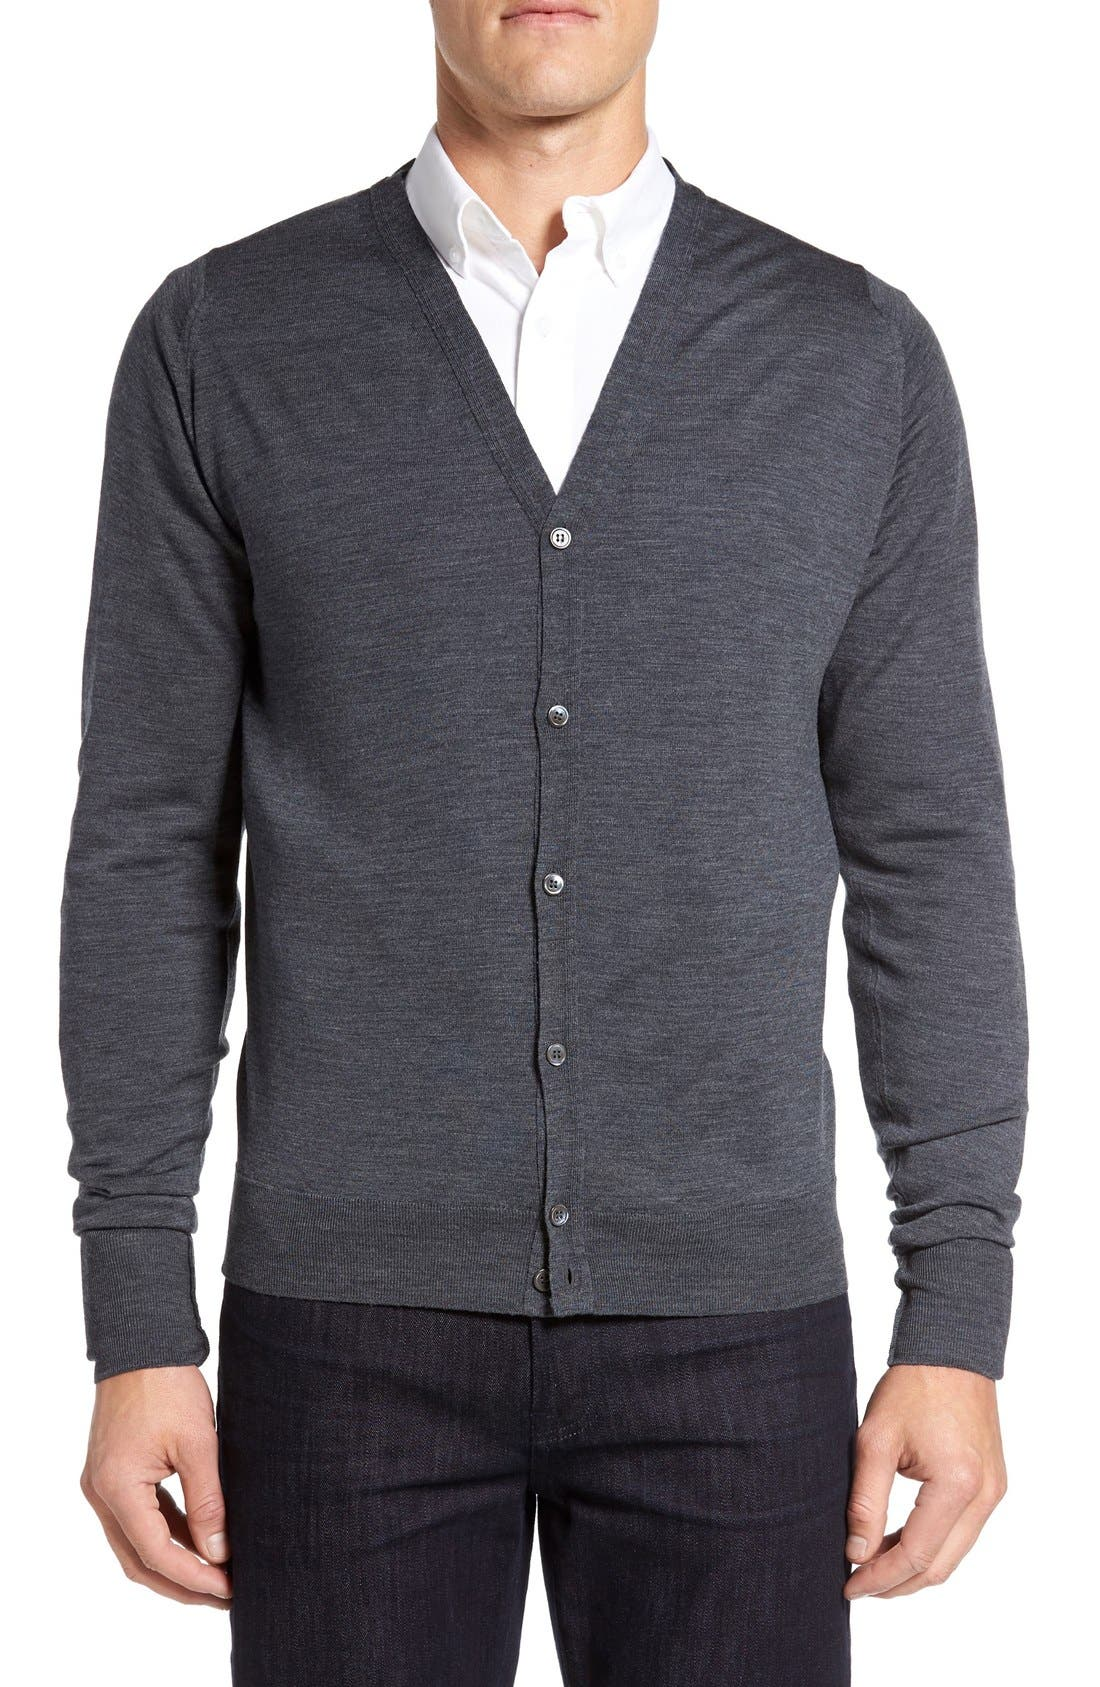 'Bryn' Easy Fit Wool Button Cardigan,                         Main,                         color, Charcoal